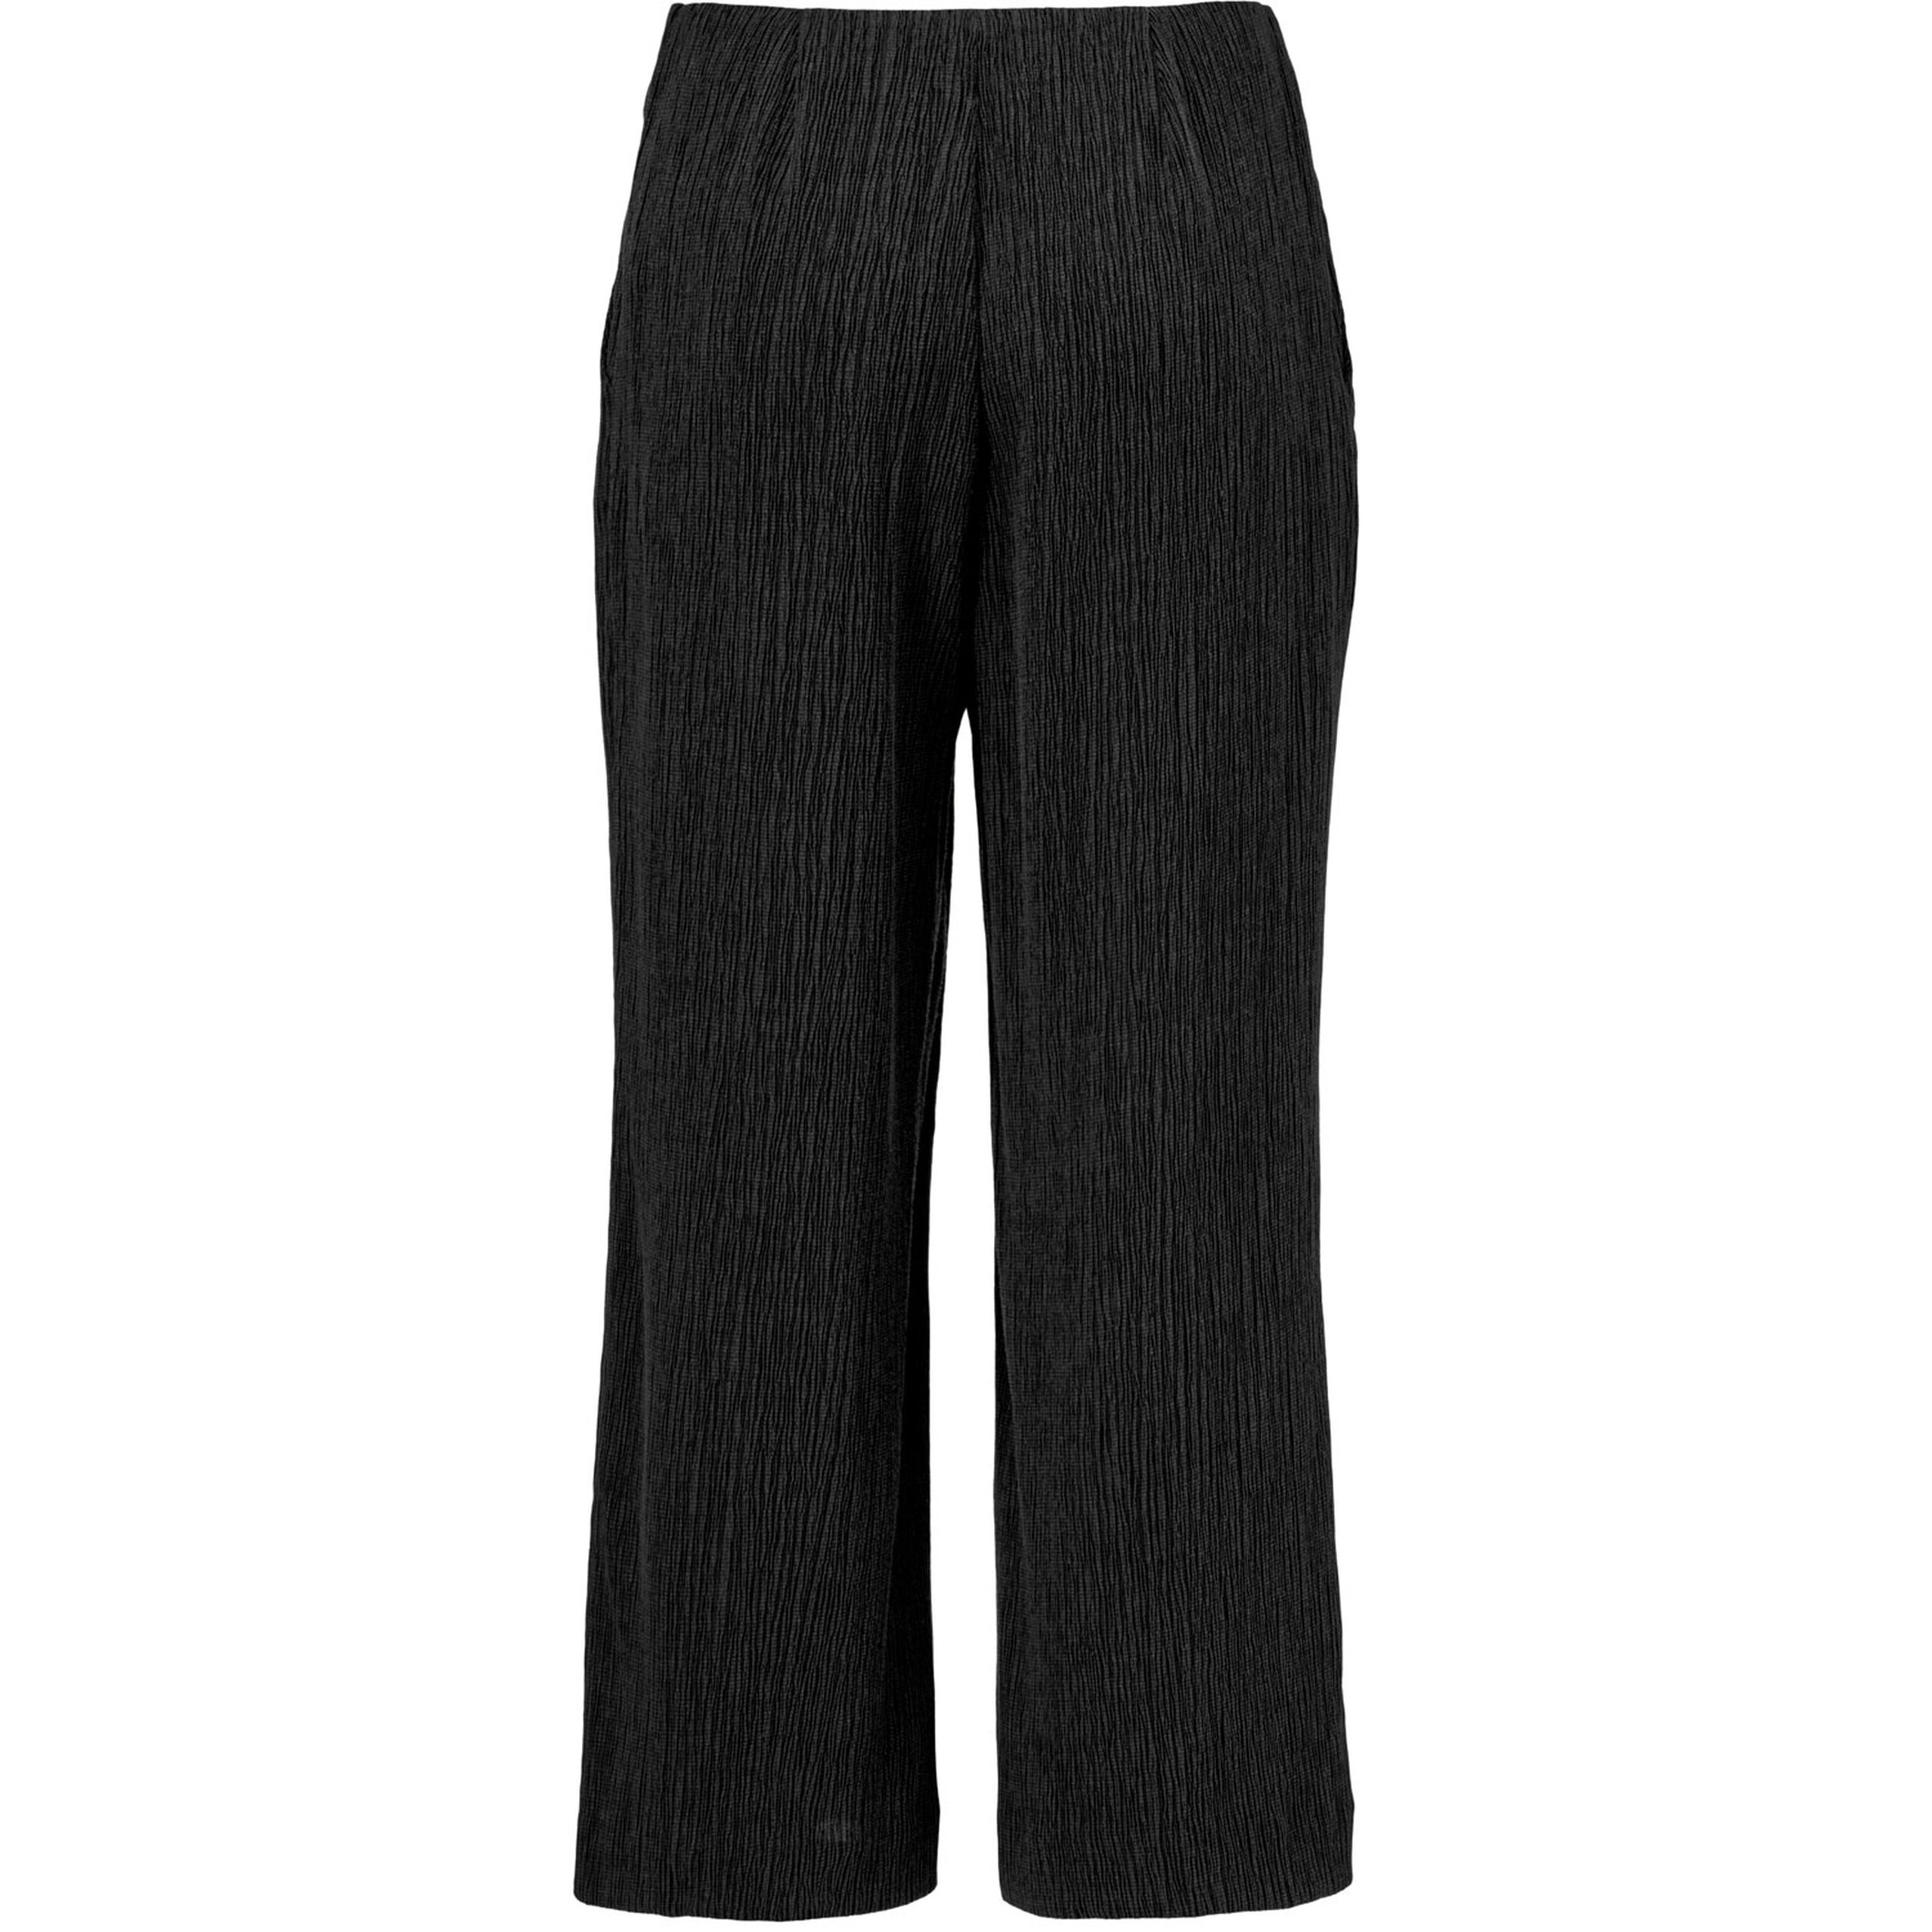 PETULA TROUSERS, Black, hi-res